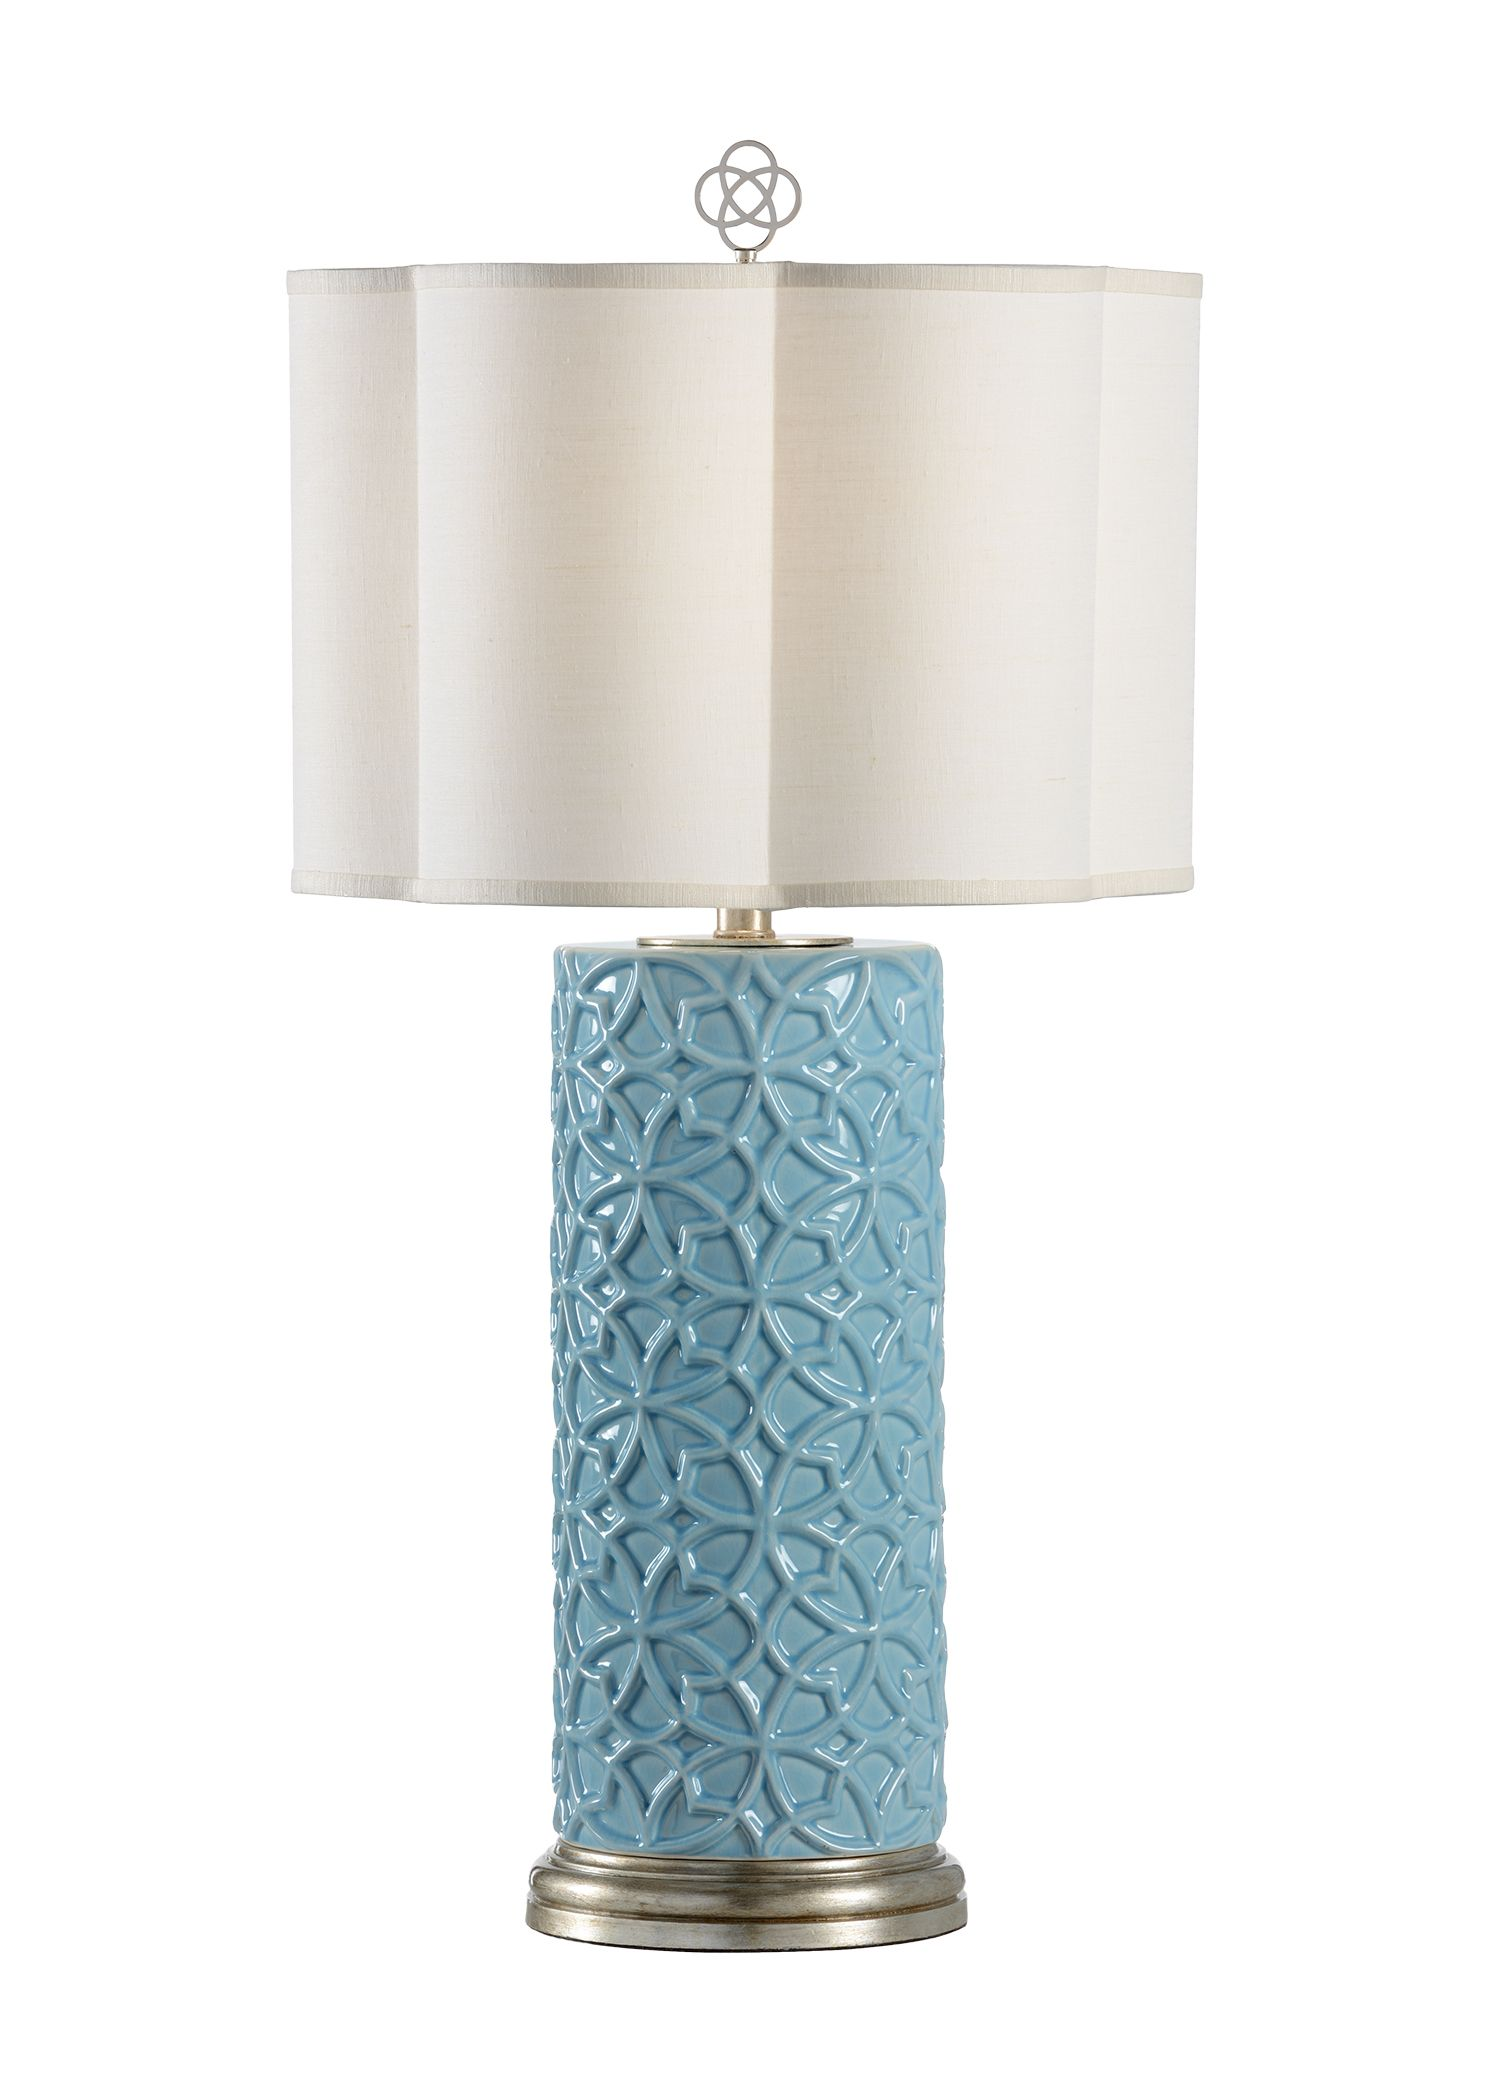 Cornelia Lamp In Pale Blue Pattern Is Inspired By The